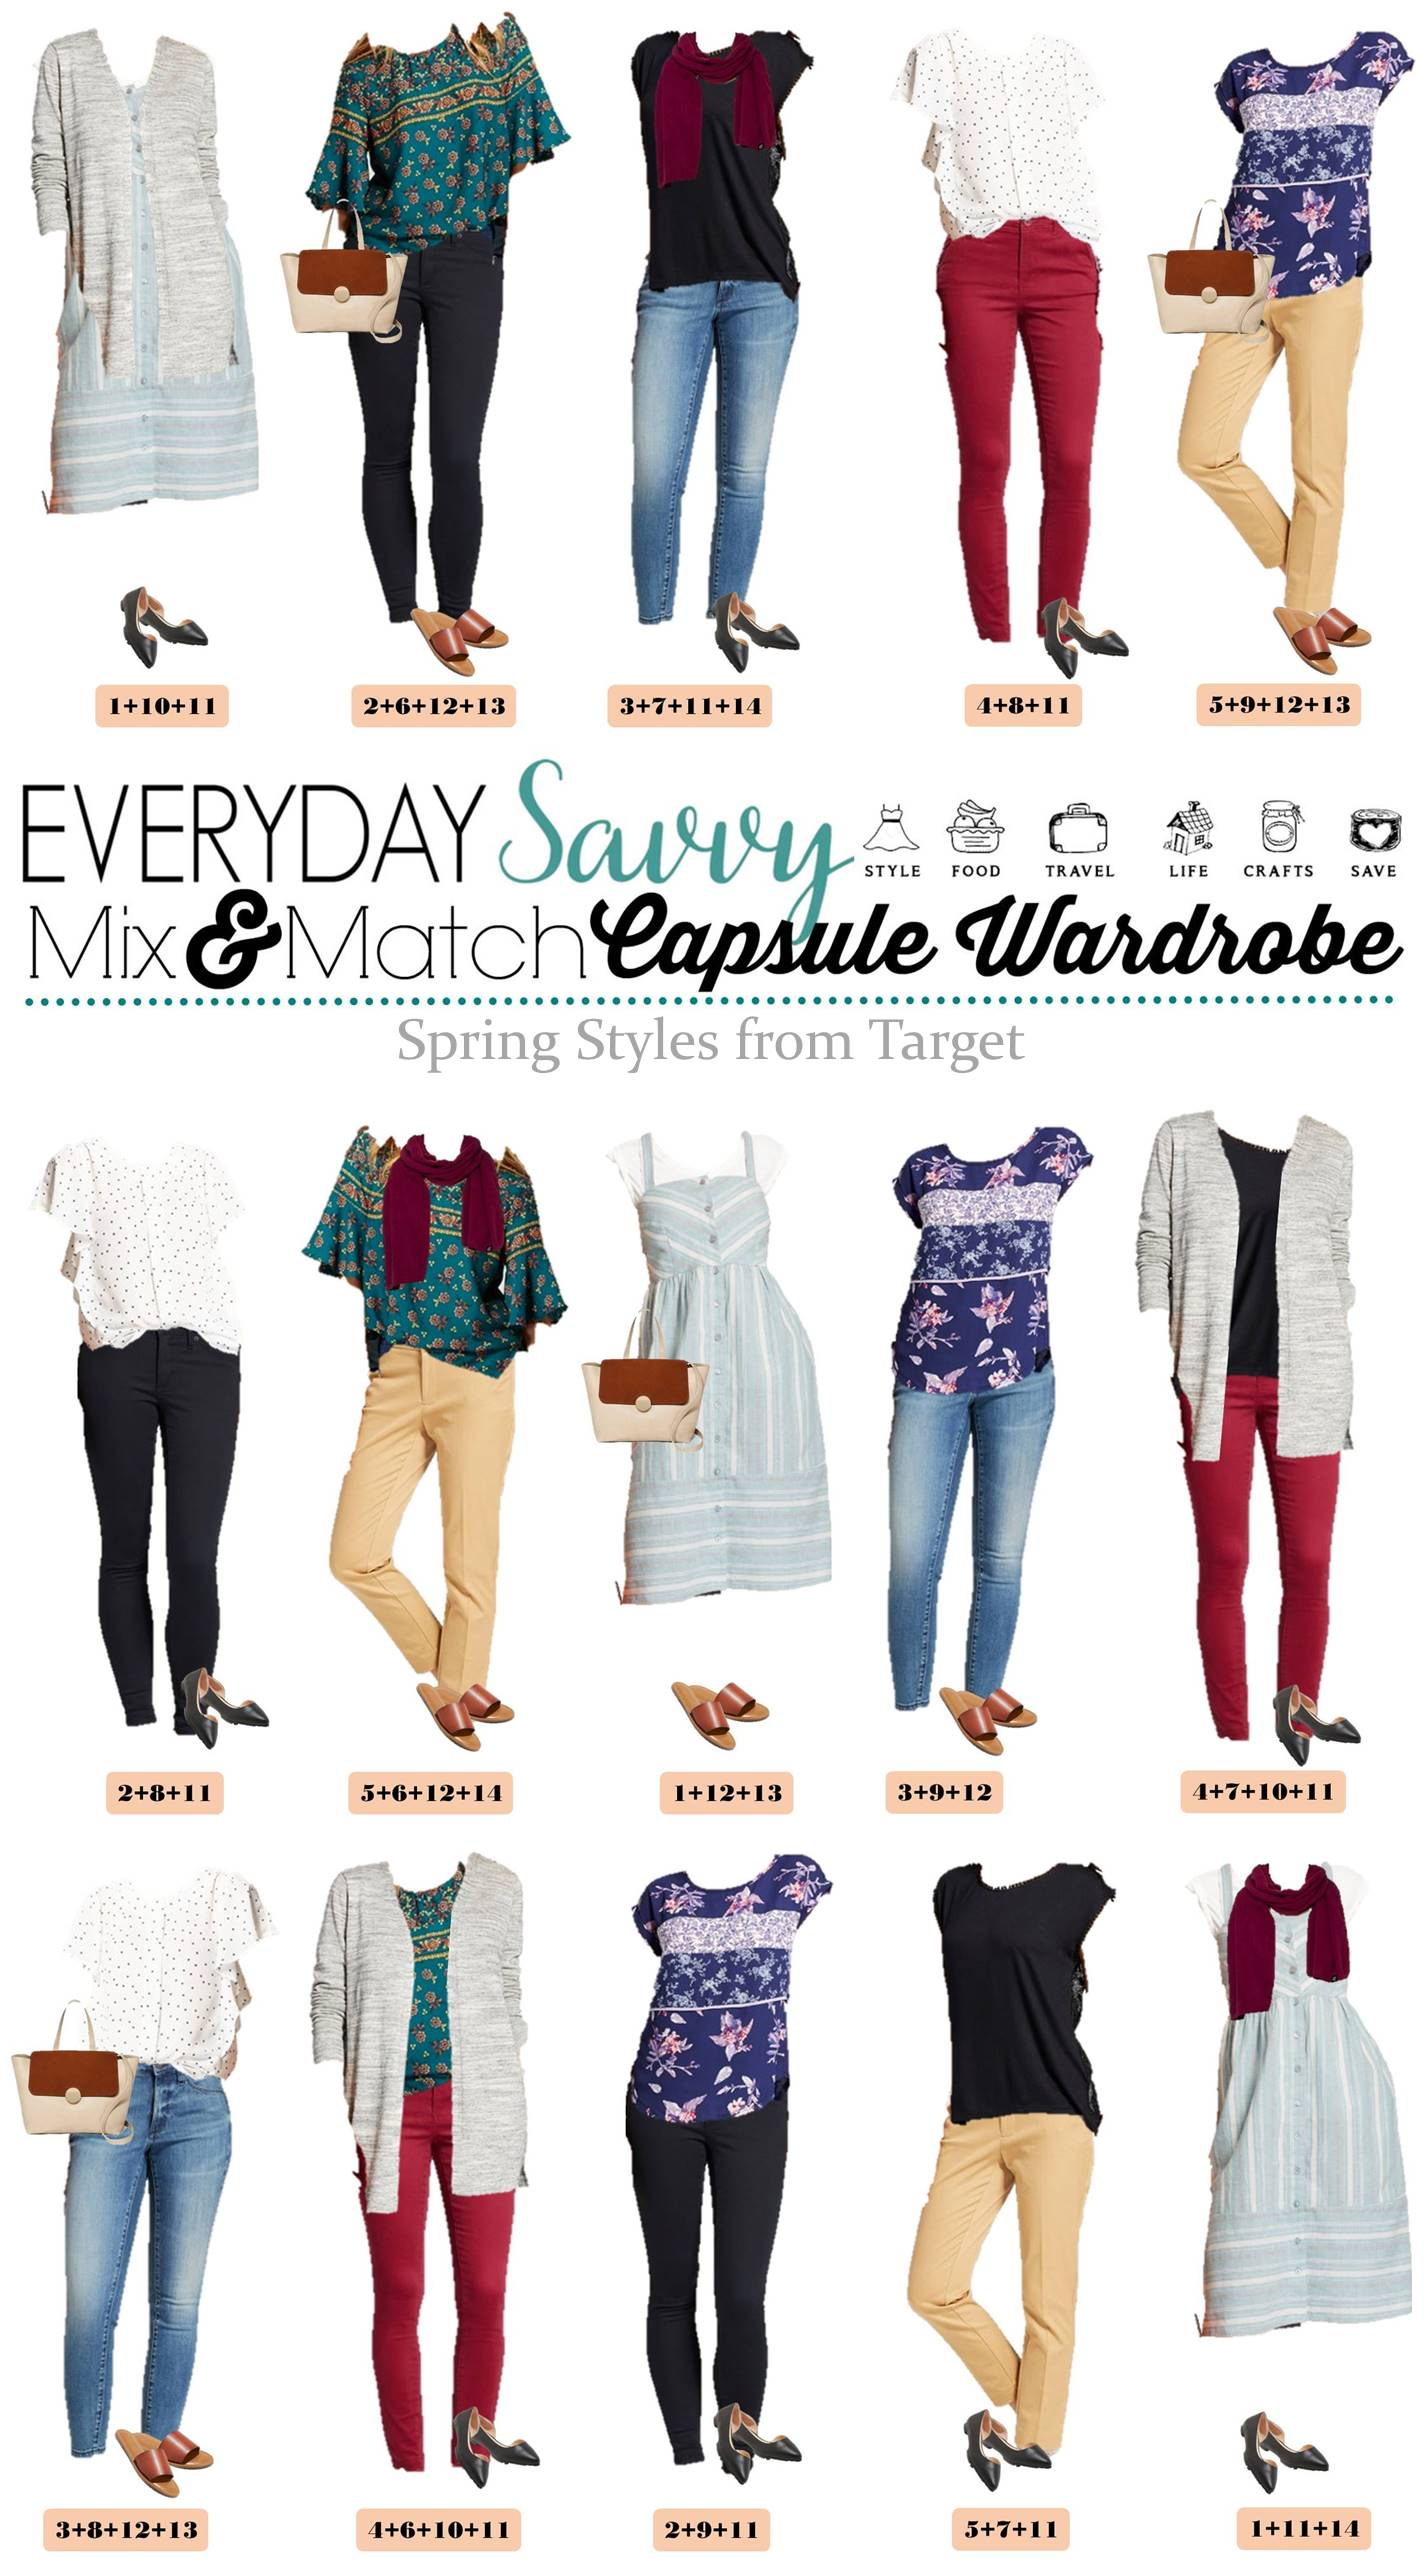 Spring Outfits from Target that mix and match